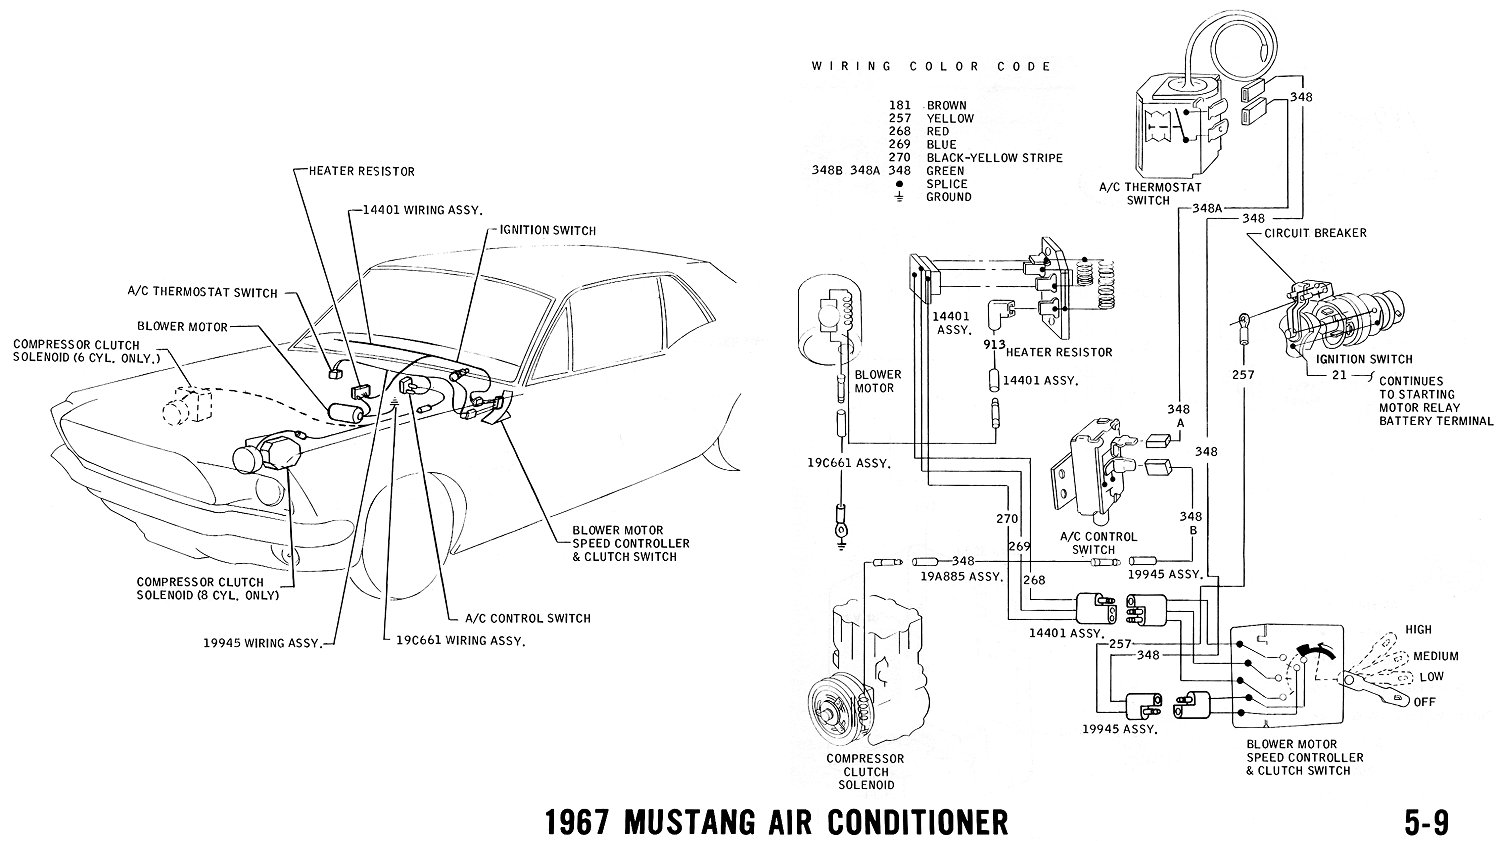 Peachy 1967 Mustang Fuse Box Wiring Diagram Wiring Diagram Tutorial Wiring Cloud Hisonuggs Outletorg